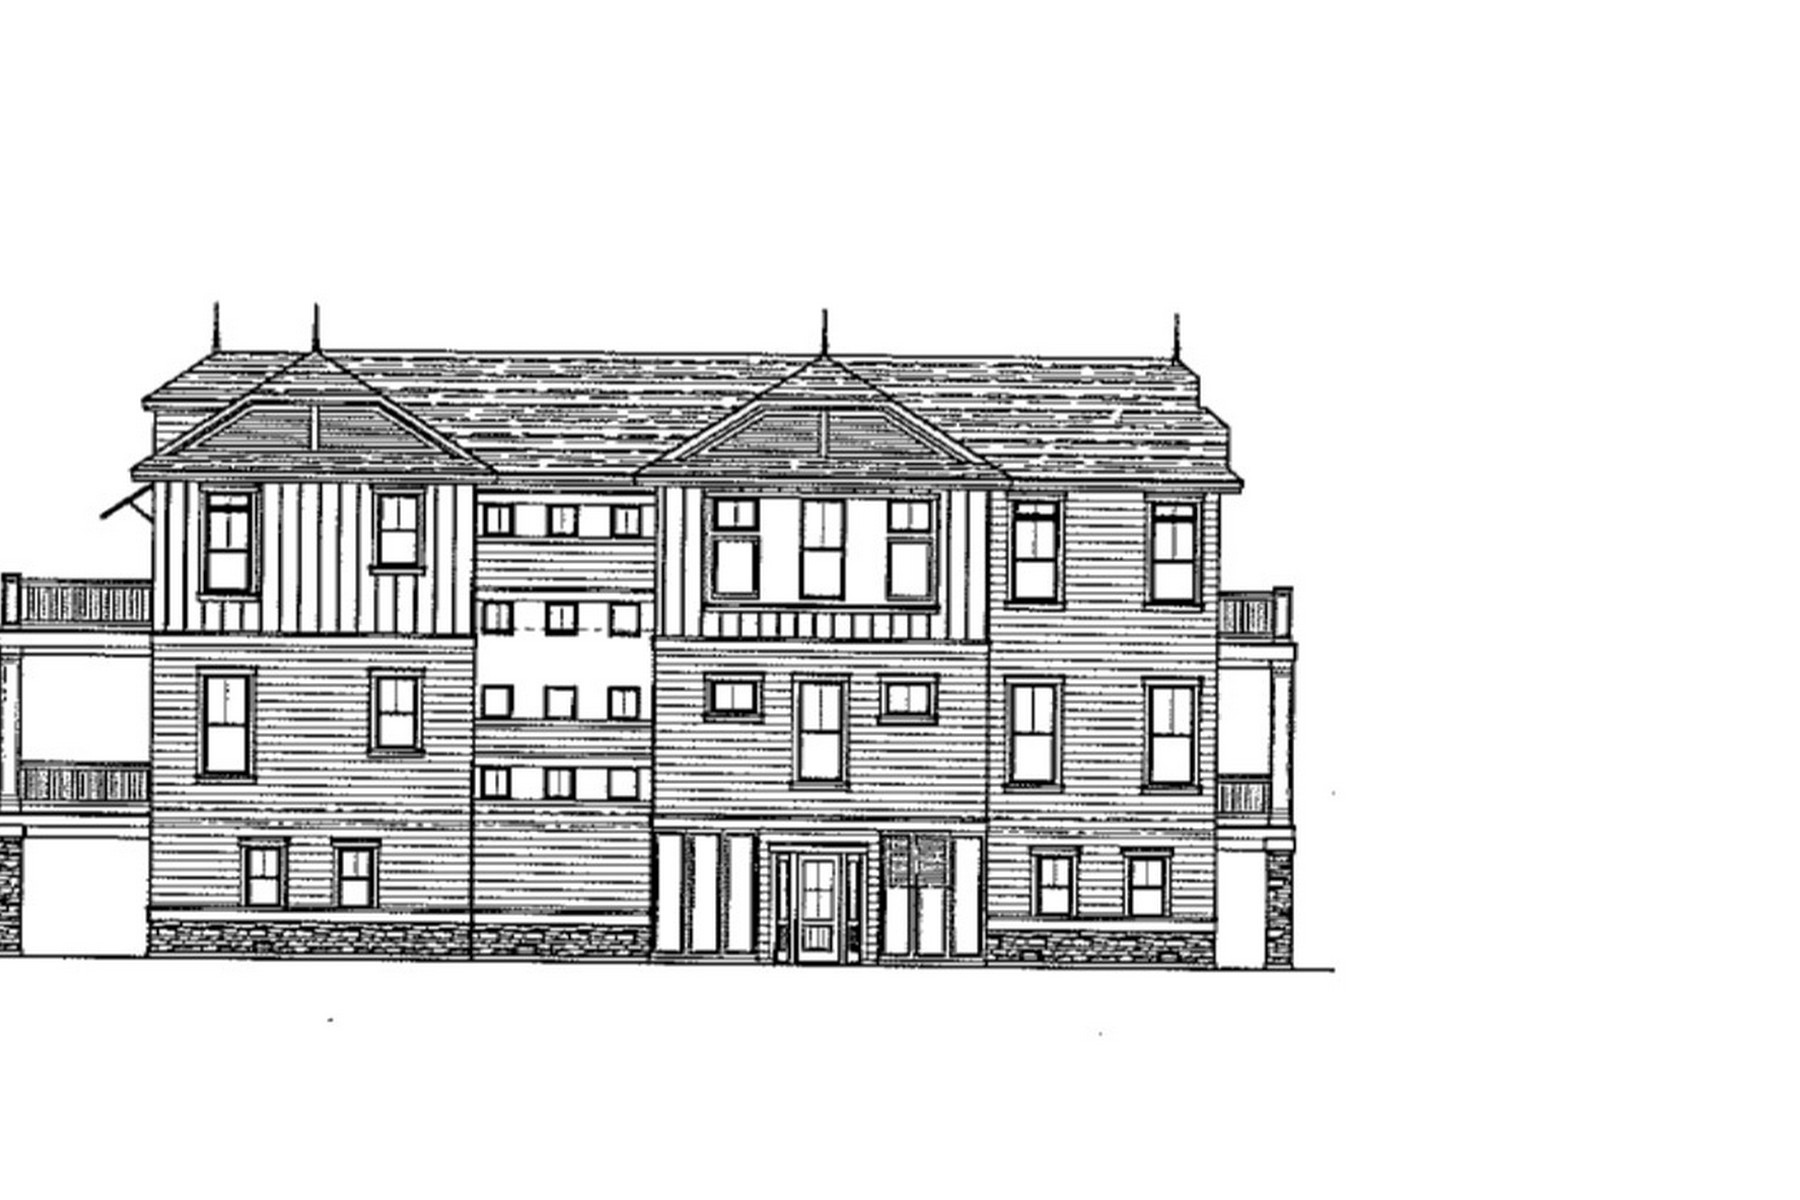 townhouses 為 出售 在 106 A S 16th Ave 106 B S 16th Ave, Longport, 新澤西州 08403 美國